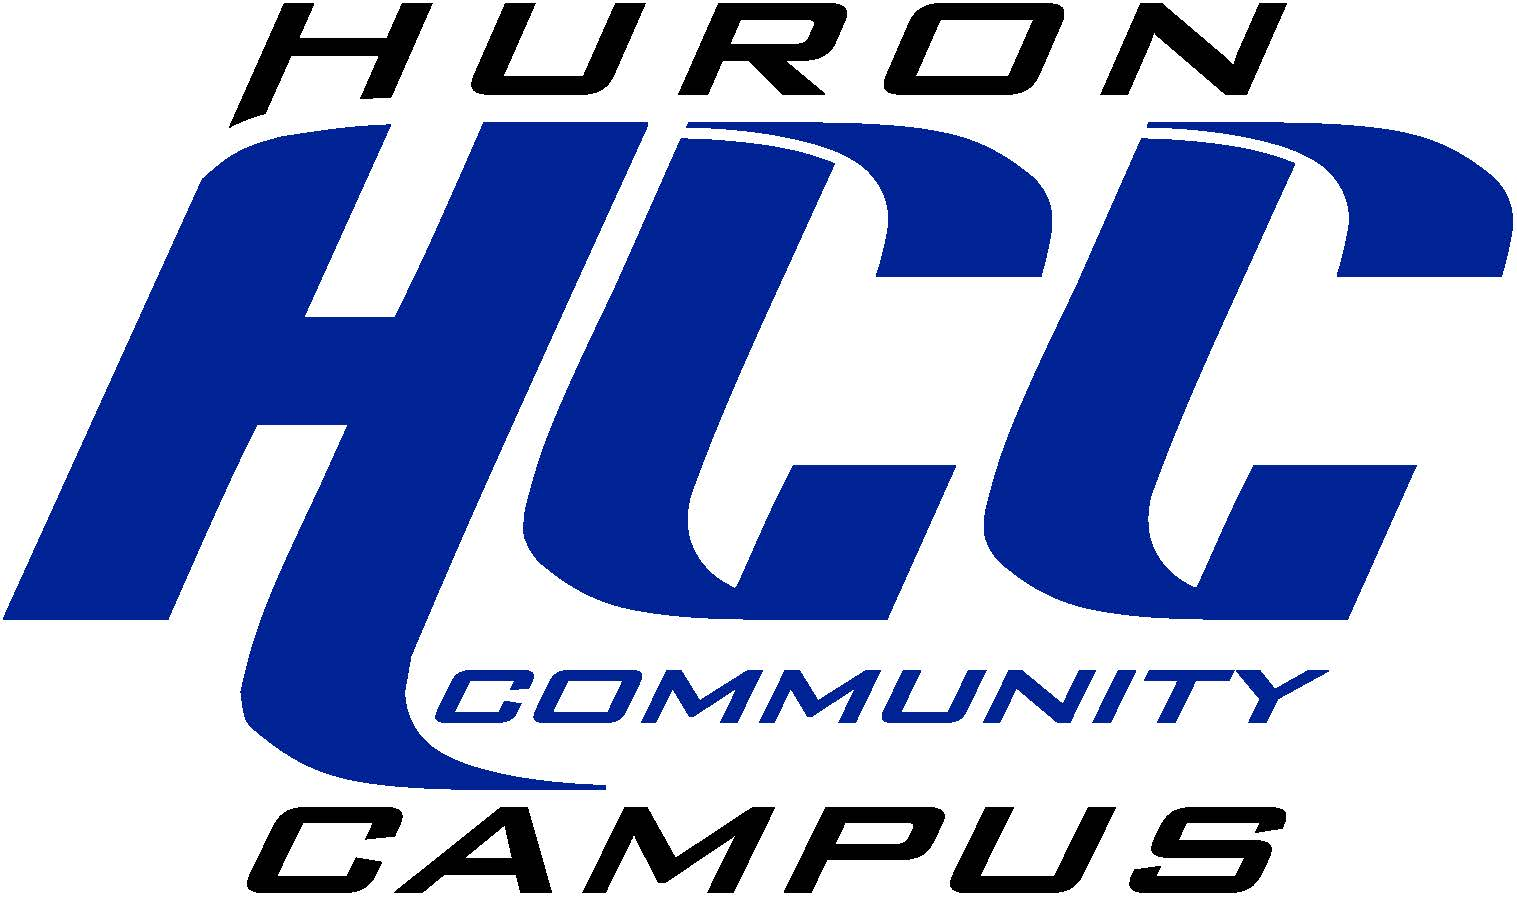 Huron Community Campus Logo